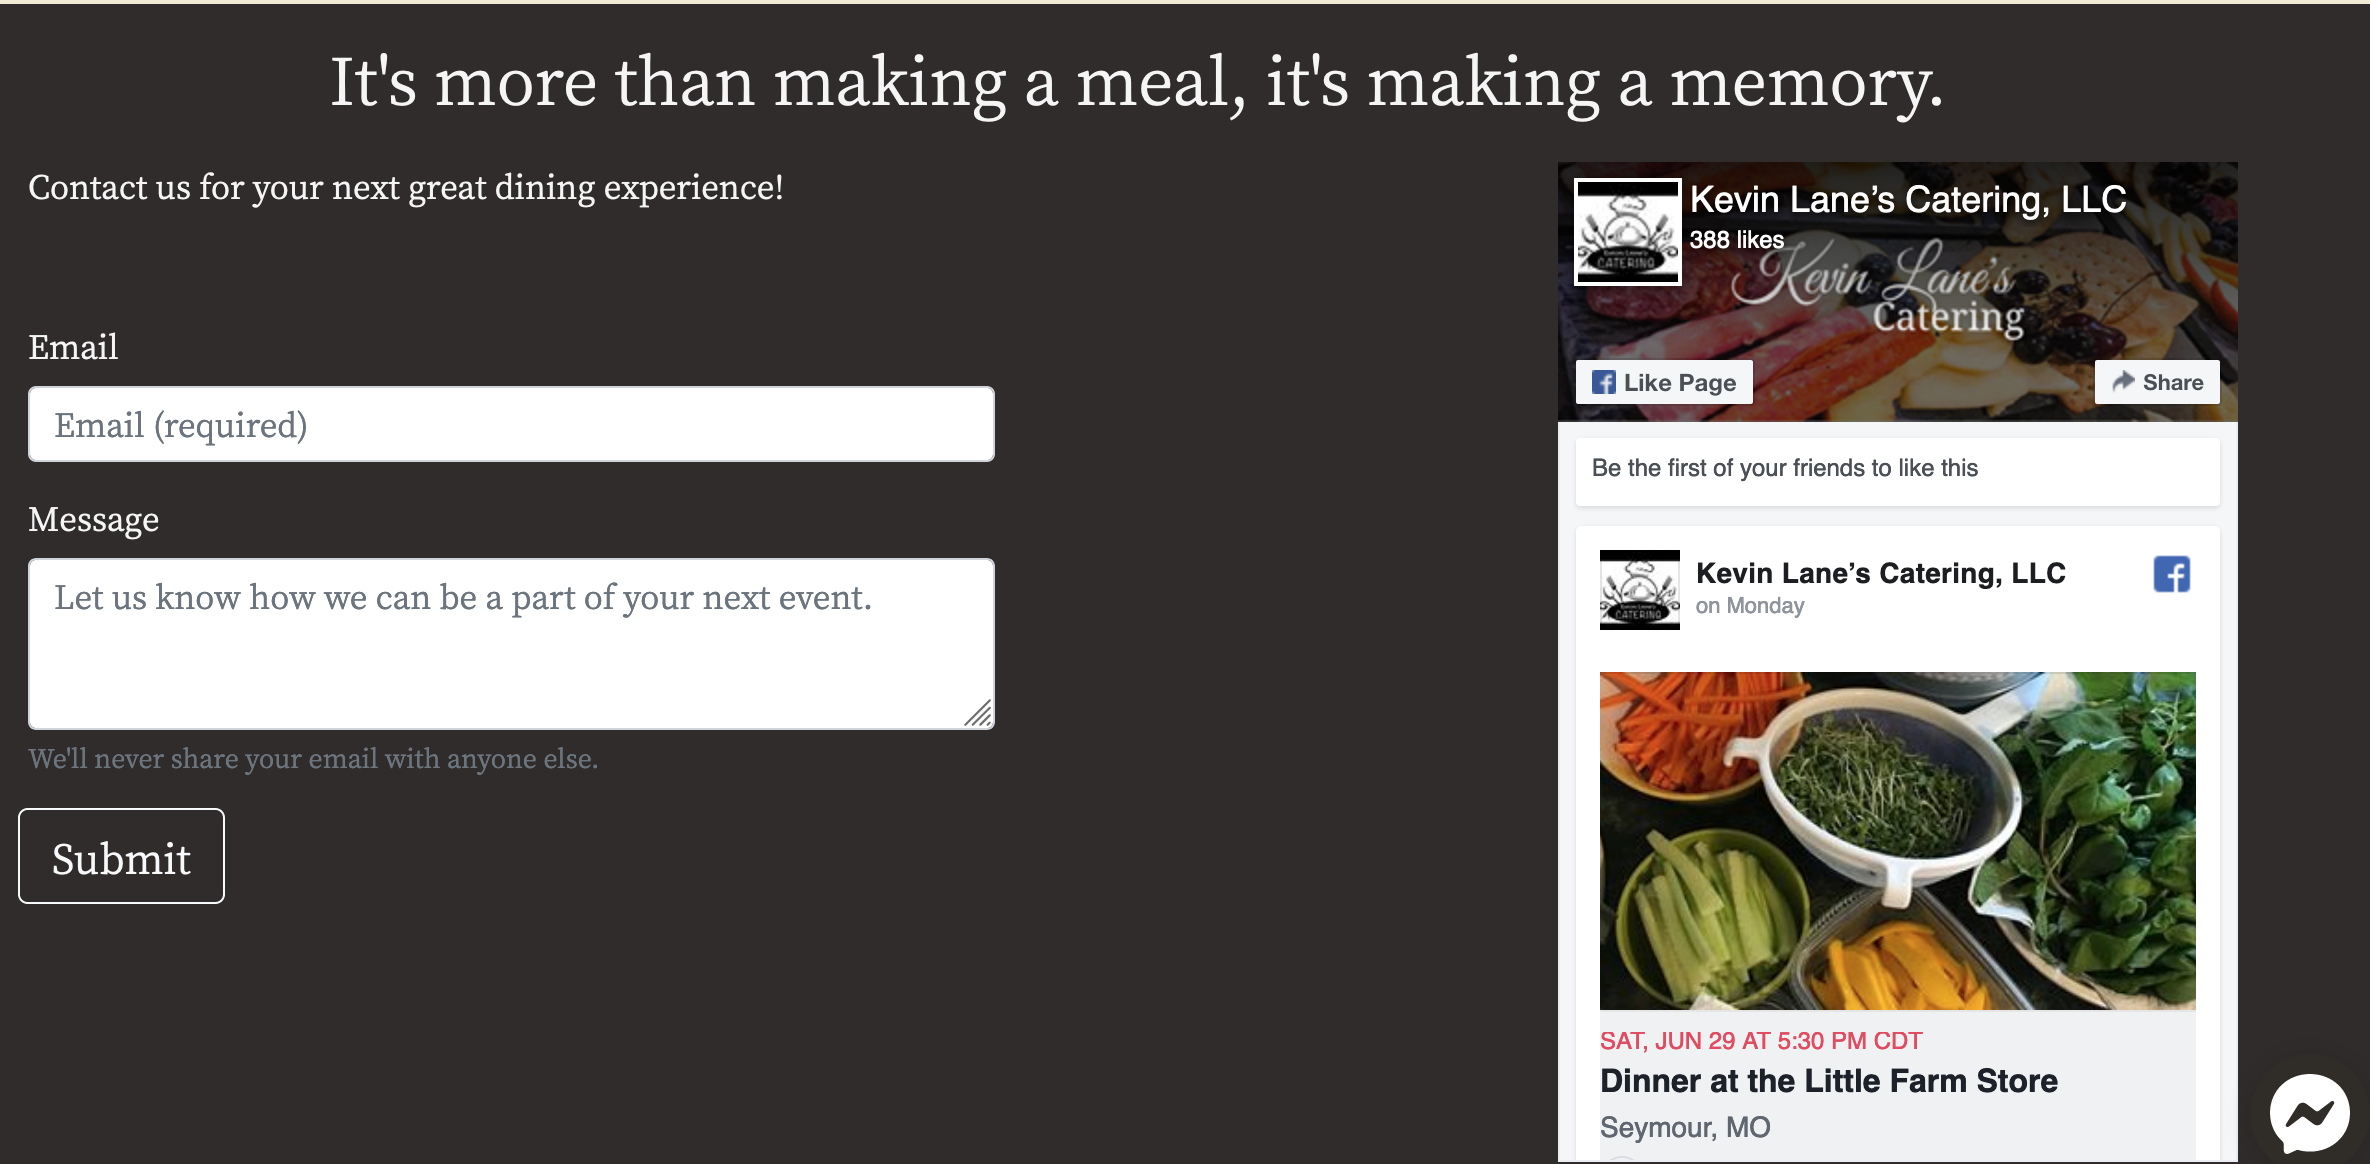 screenshot of kevin lane's catering website footer section